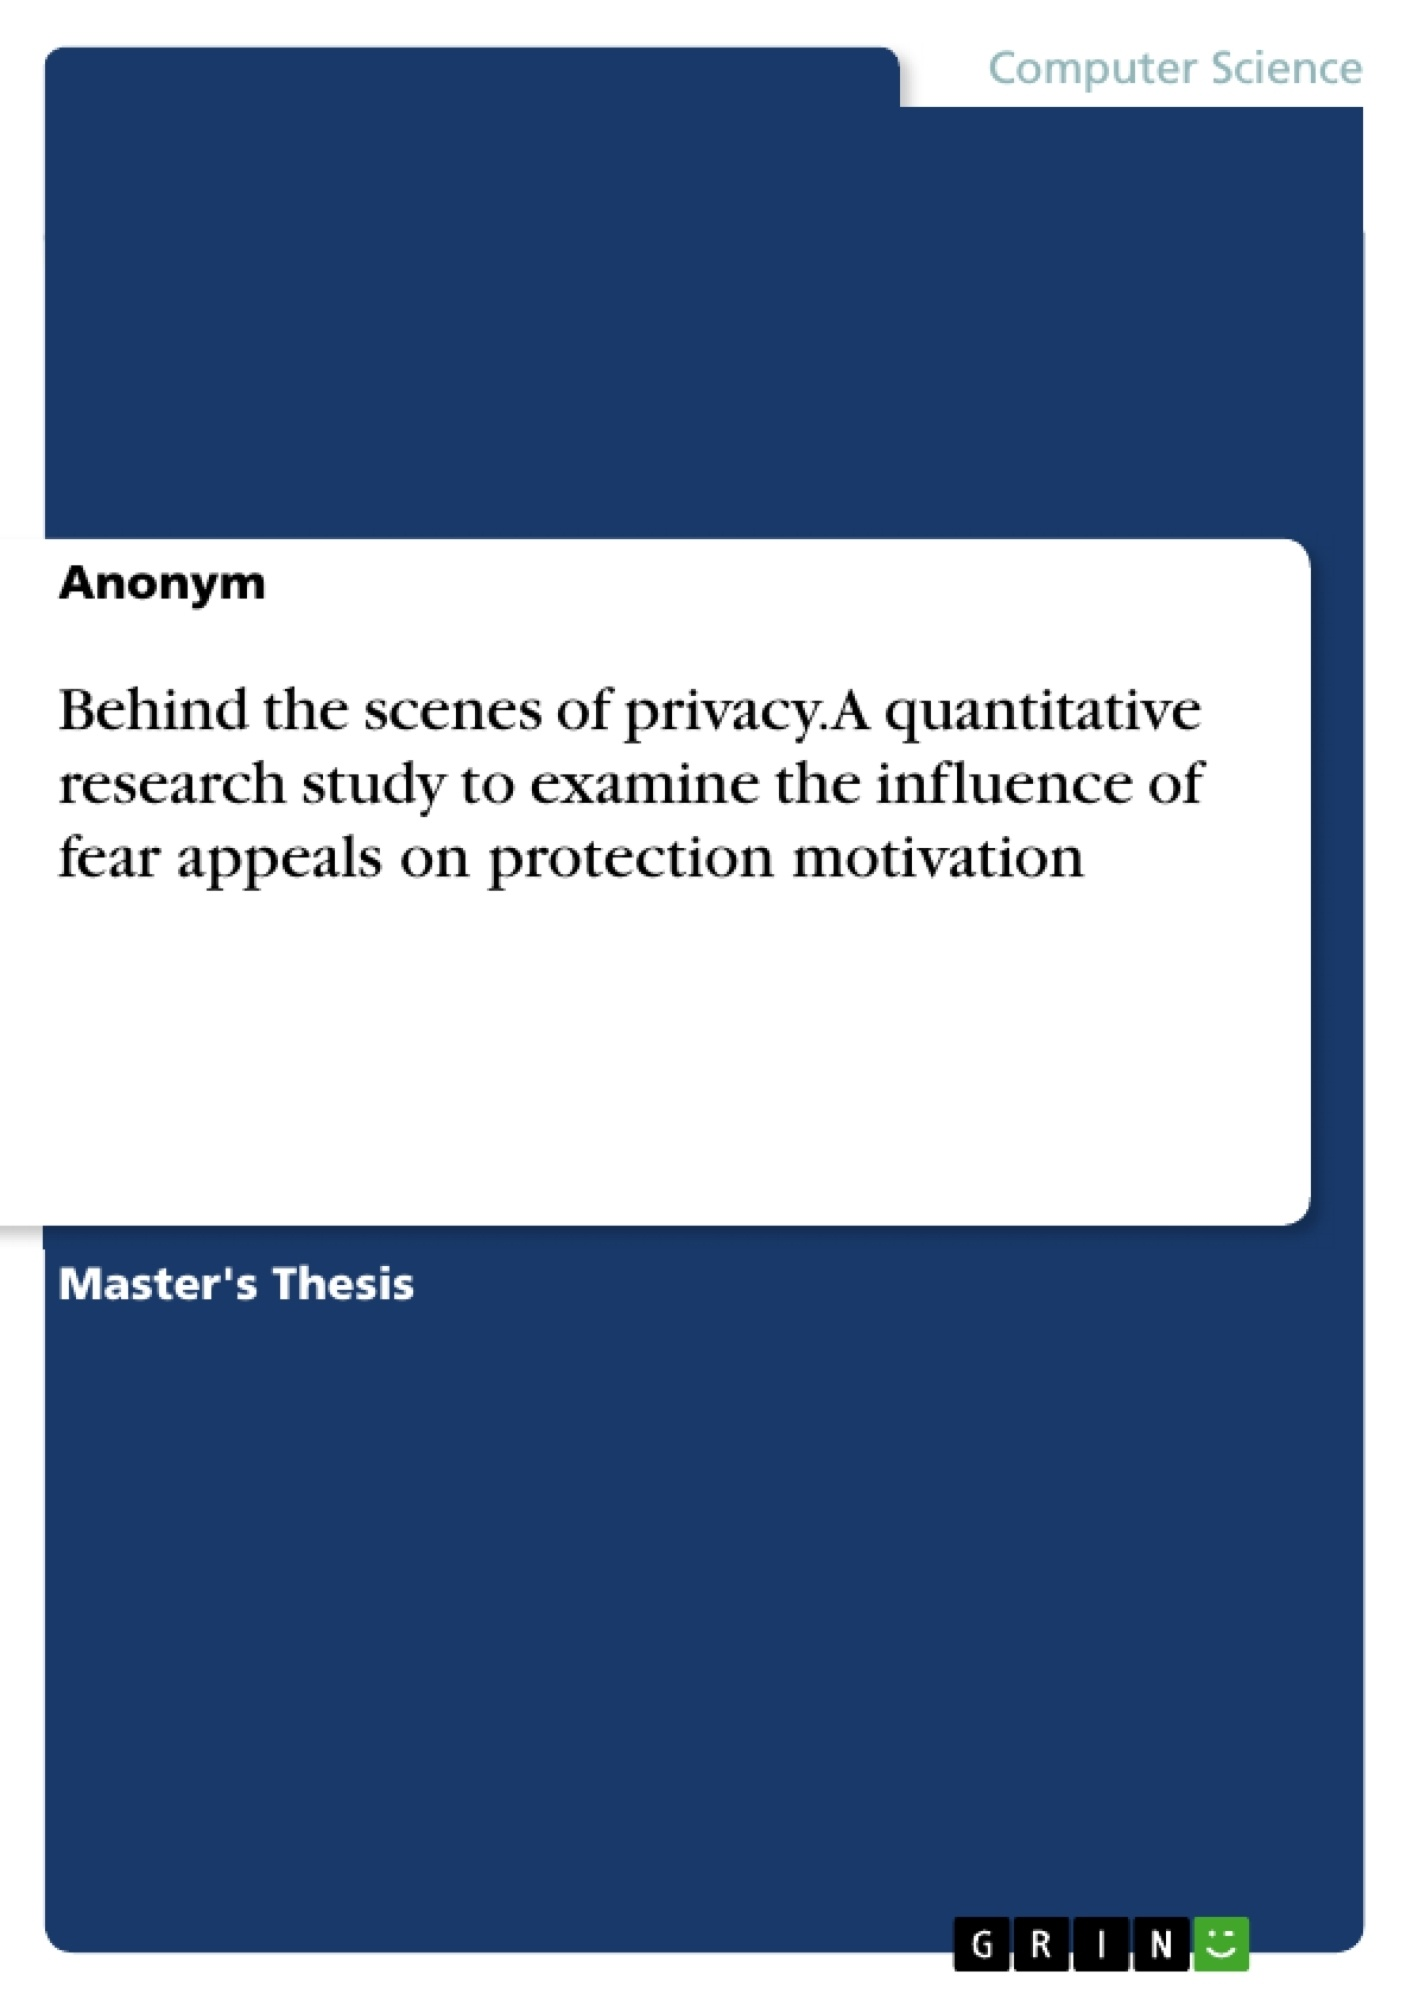 Title: Behind the scenes of privacy. A quantitative research study to examine the influence of fear appeals on protection motivation